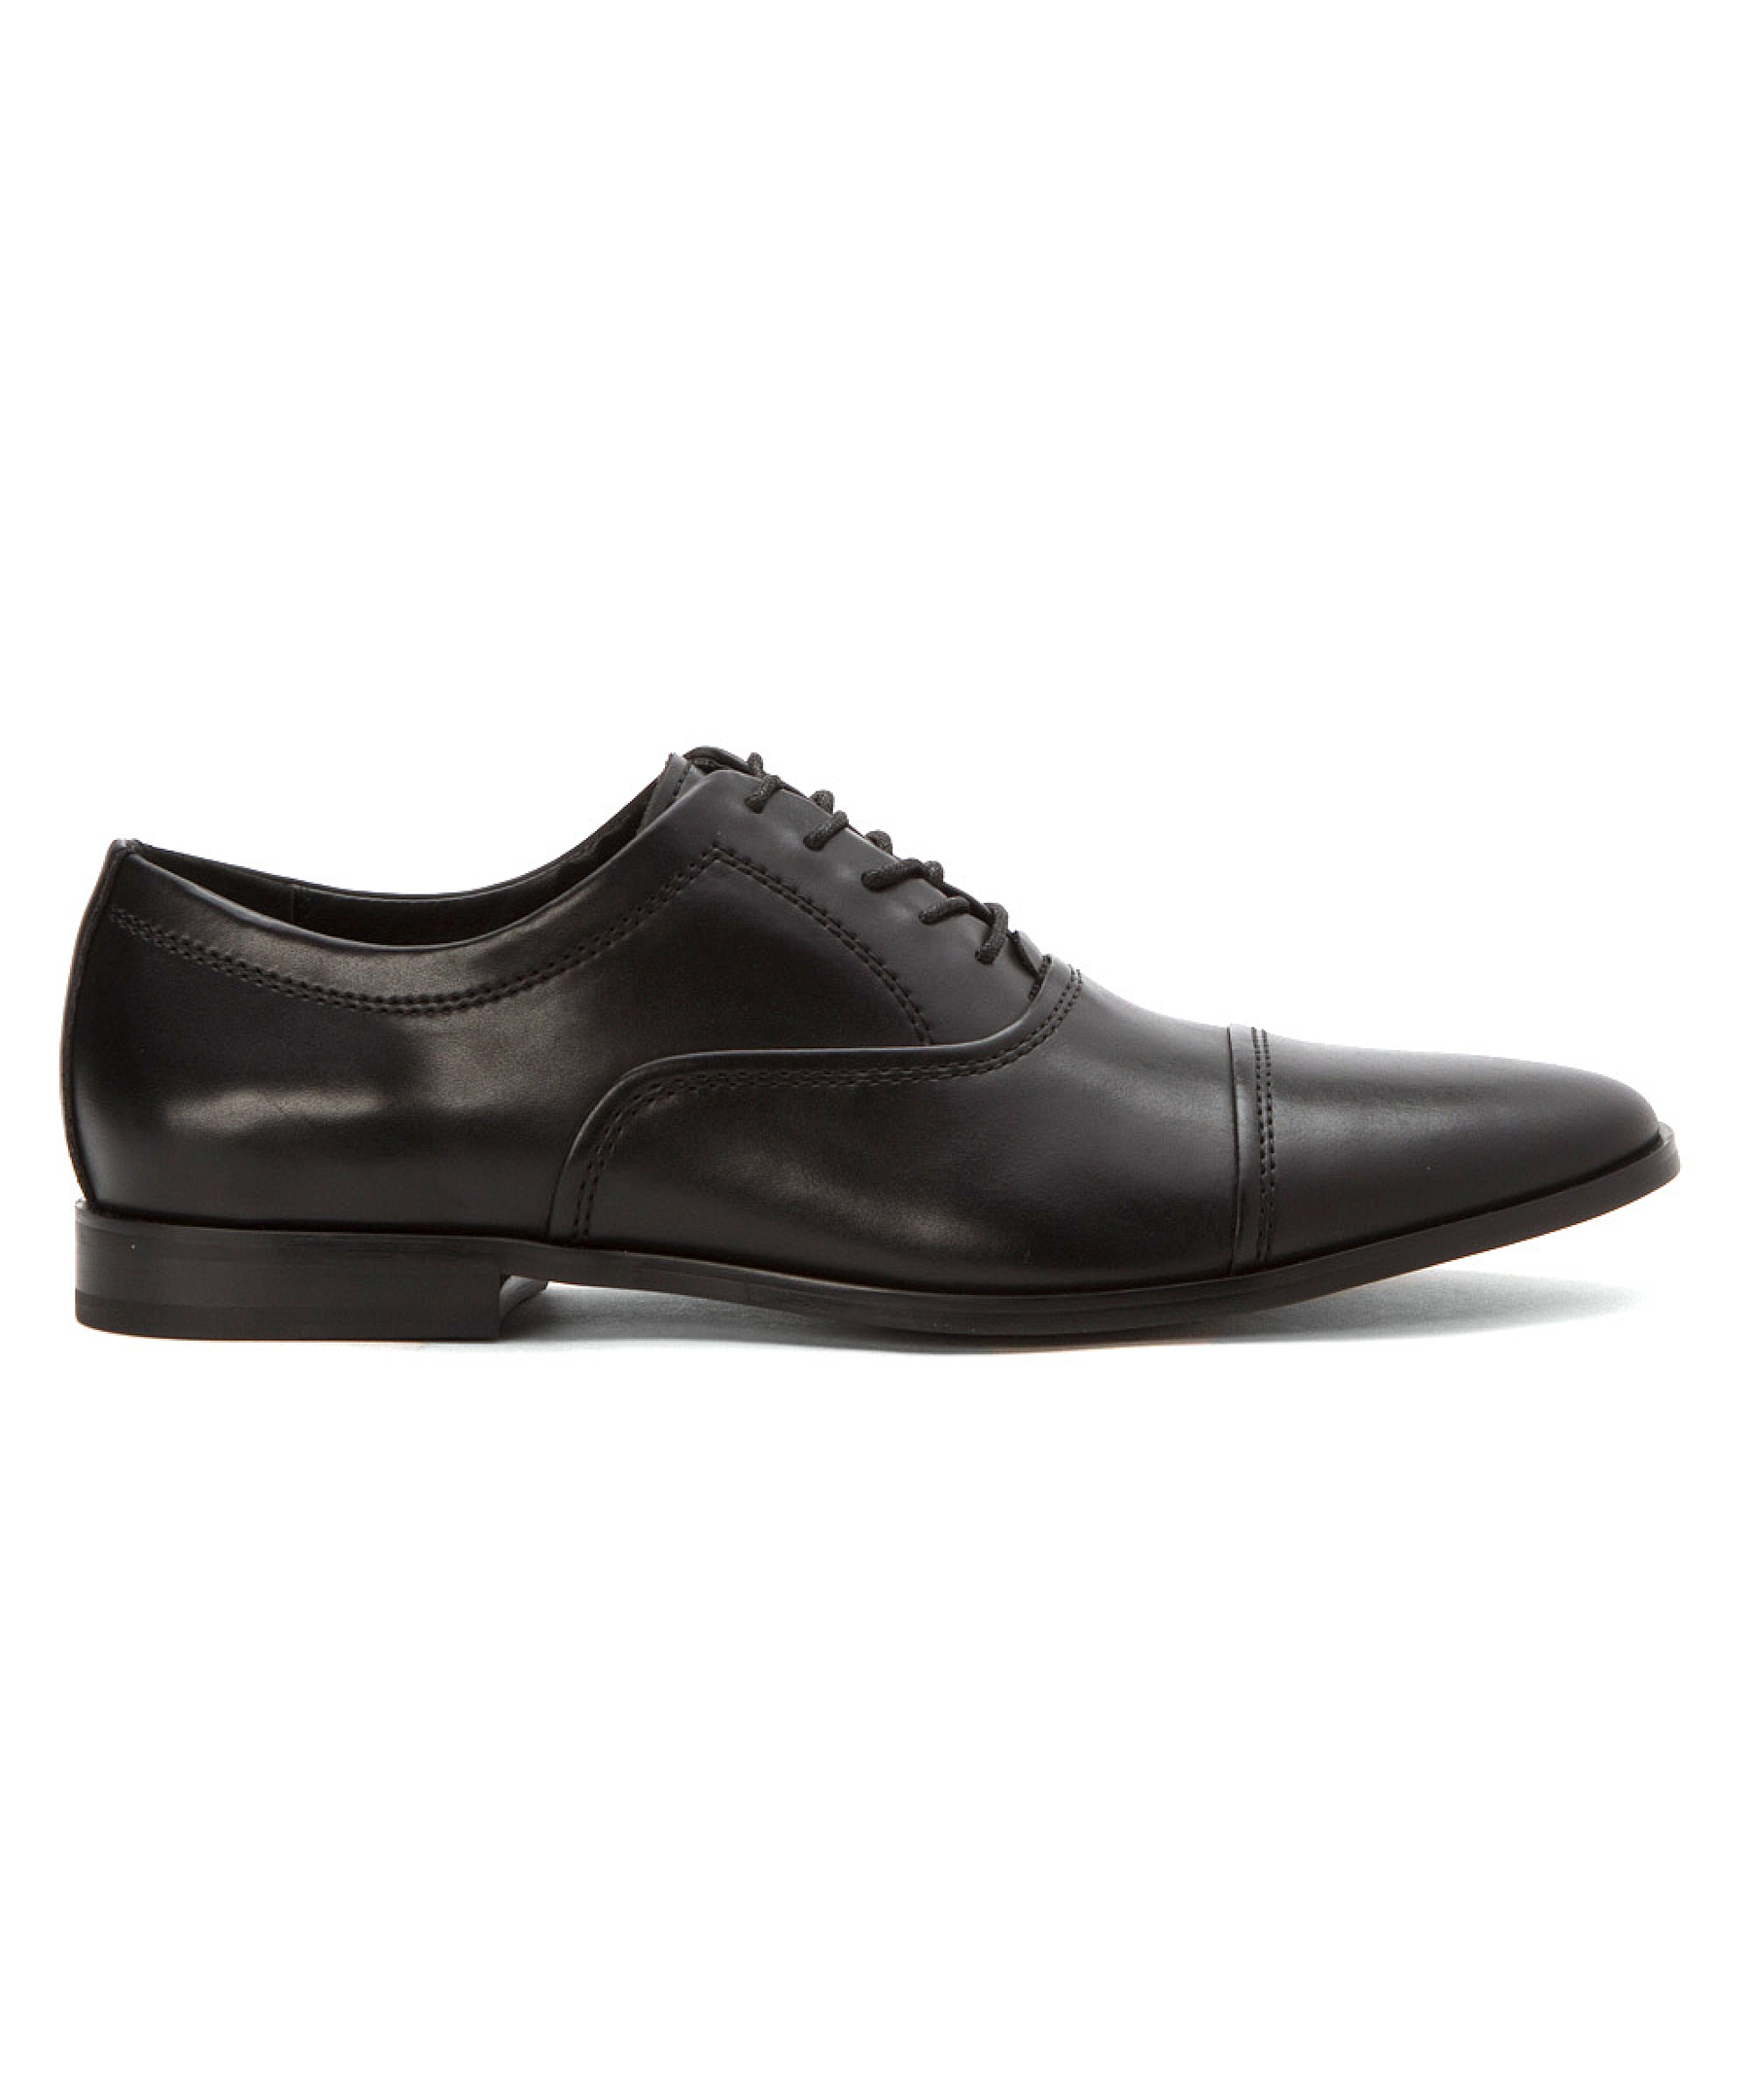 calvin klein men 39 s nino leather oxfords shoes in black for. Black Bedroom Furniture Sets. Home Design Ideas